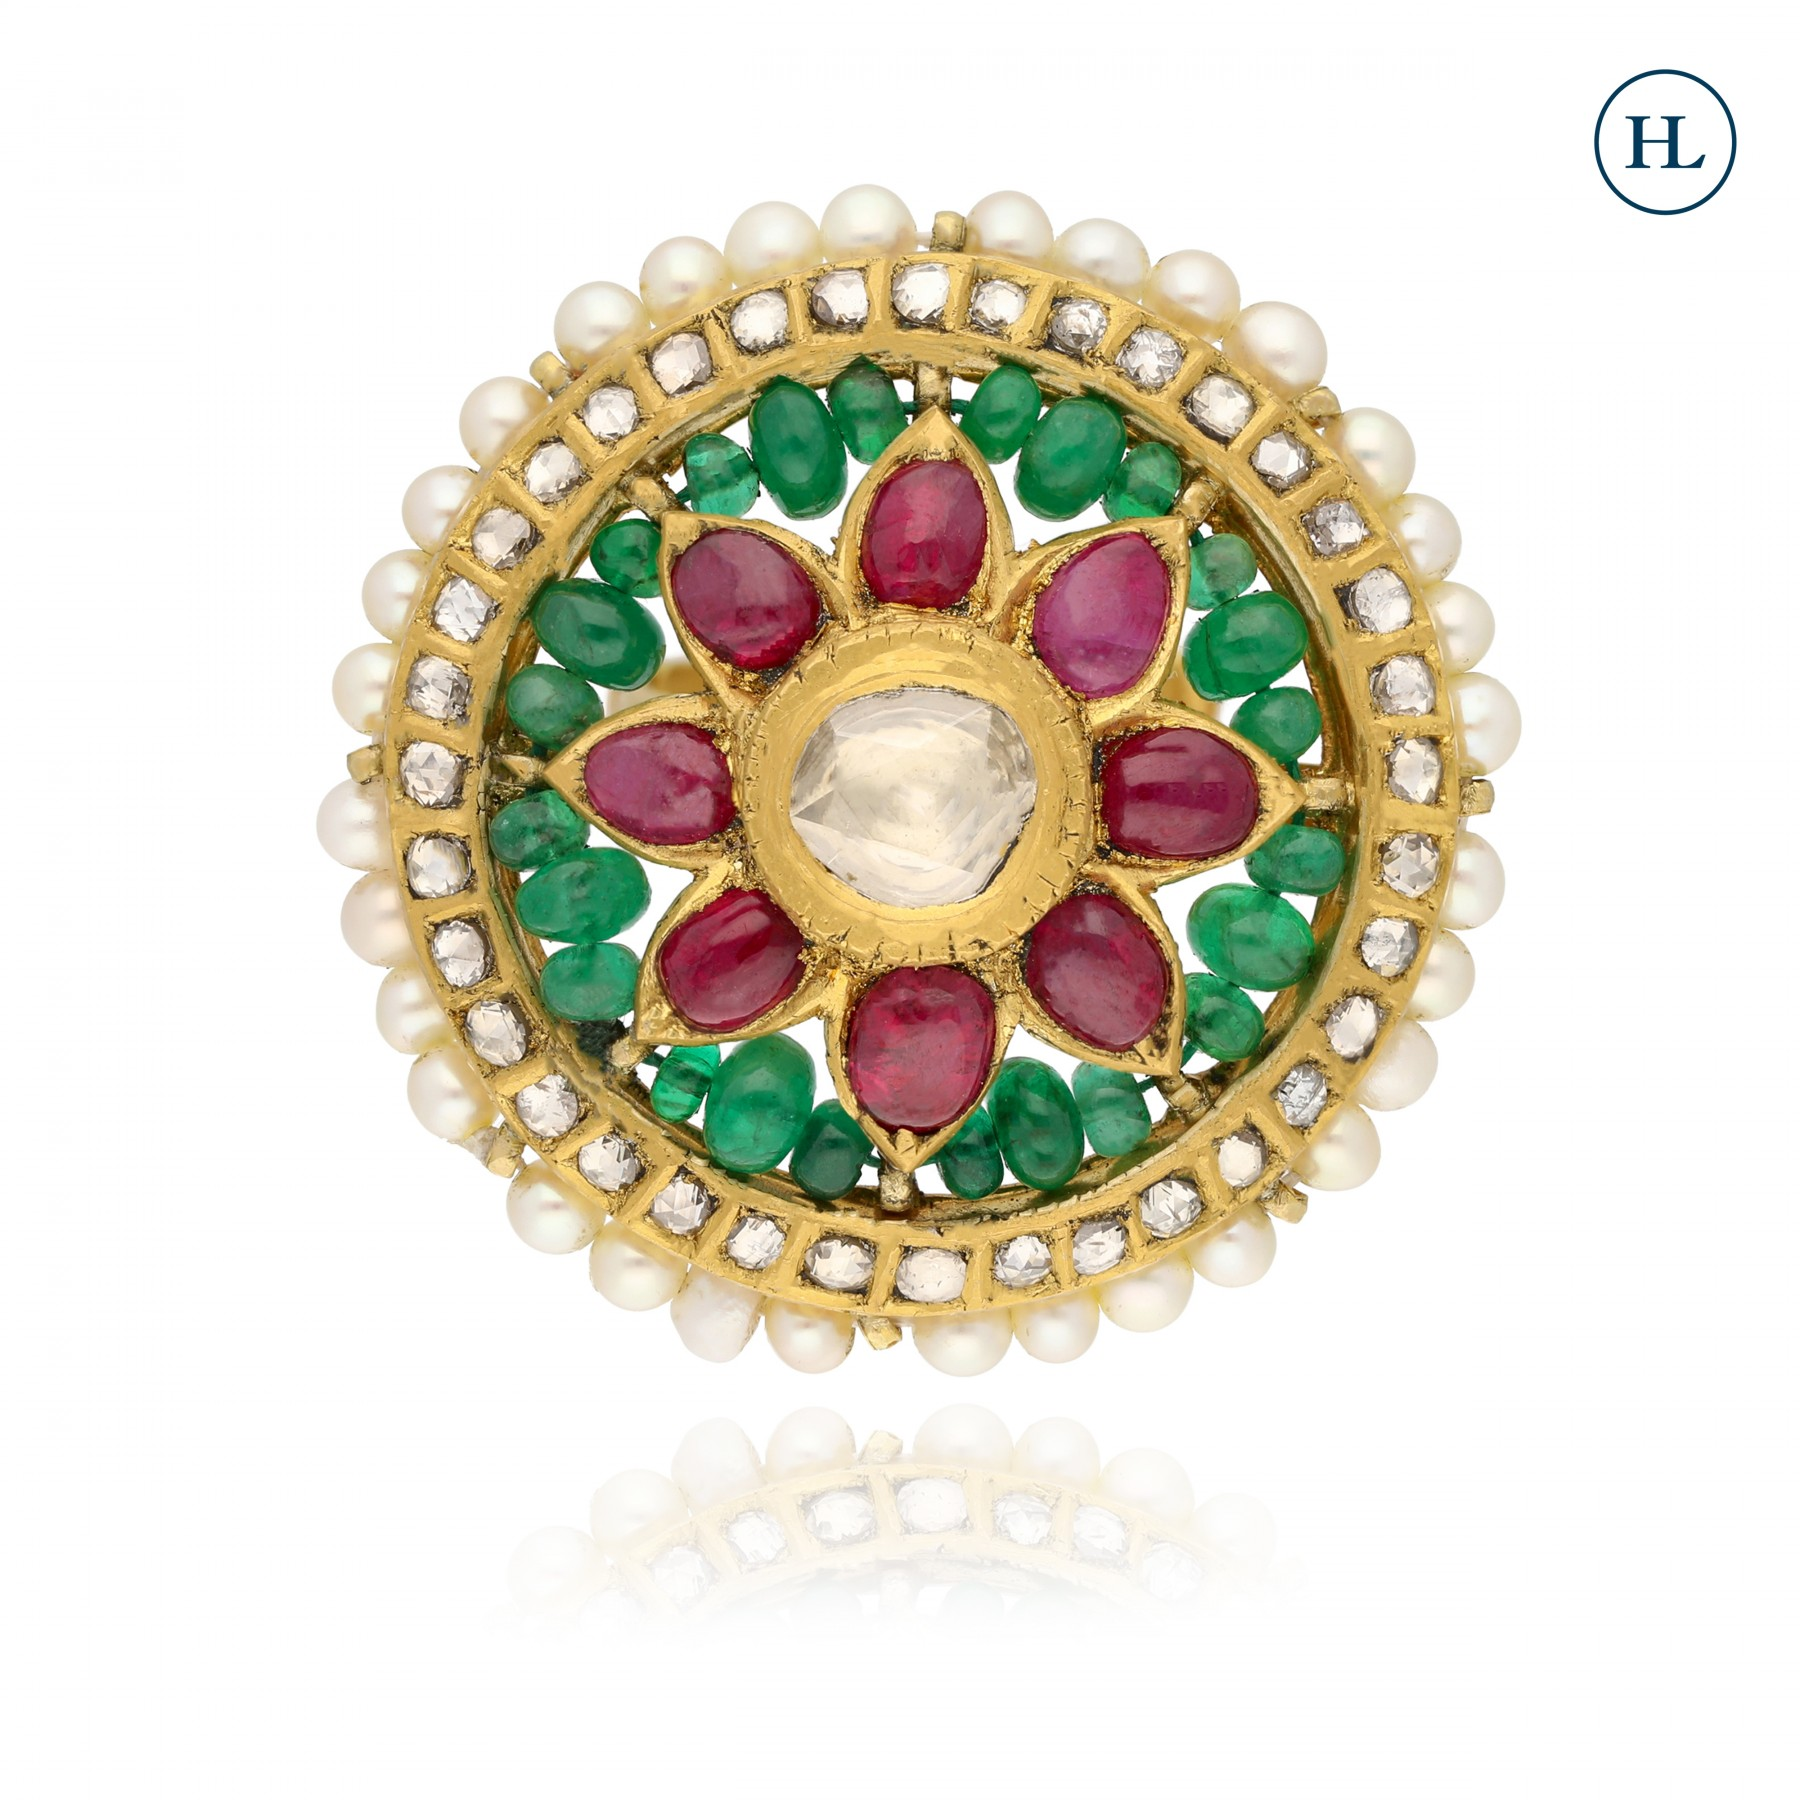 Antique-Styled Ruby & Emerald Ring